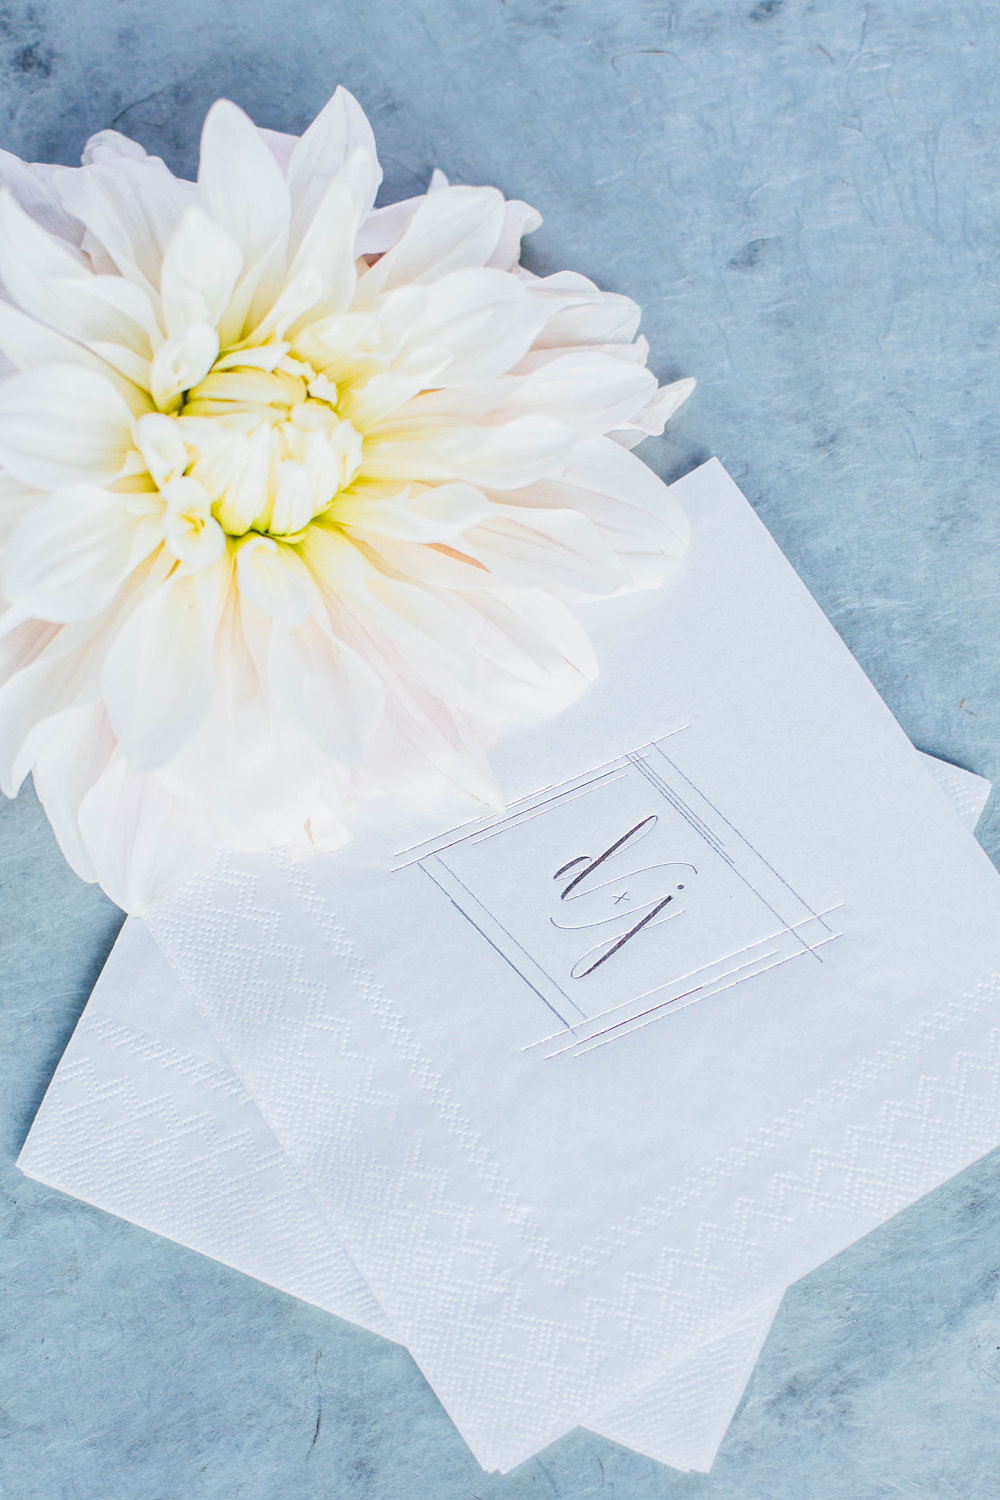 043 Cocktail Napkins.jpg